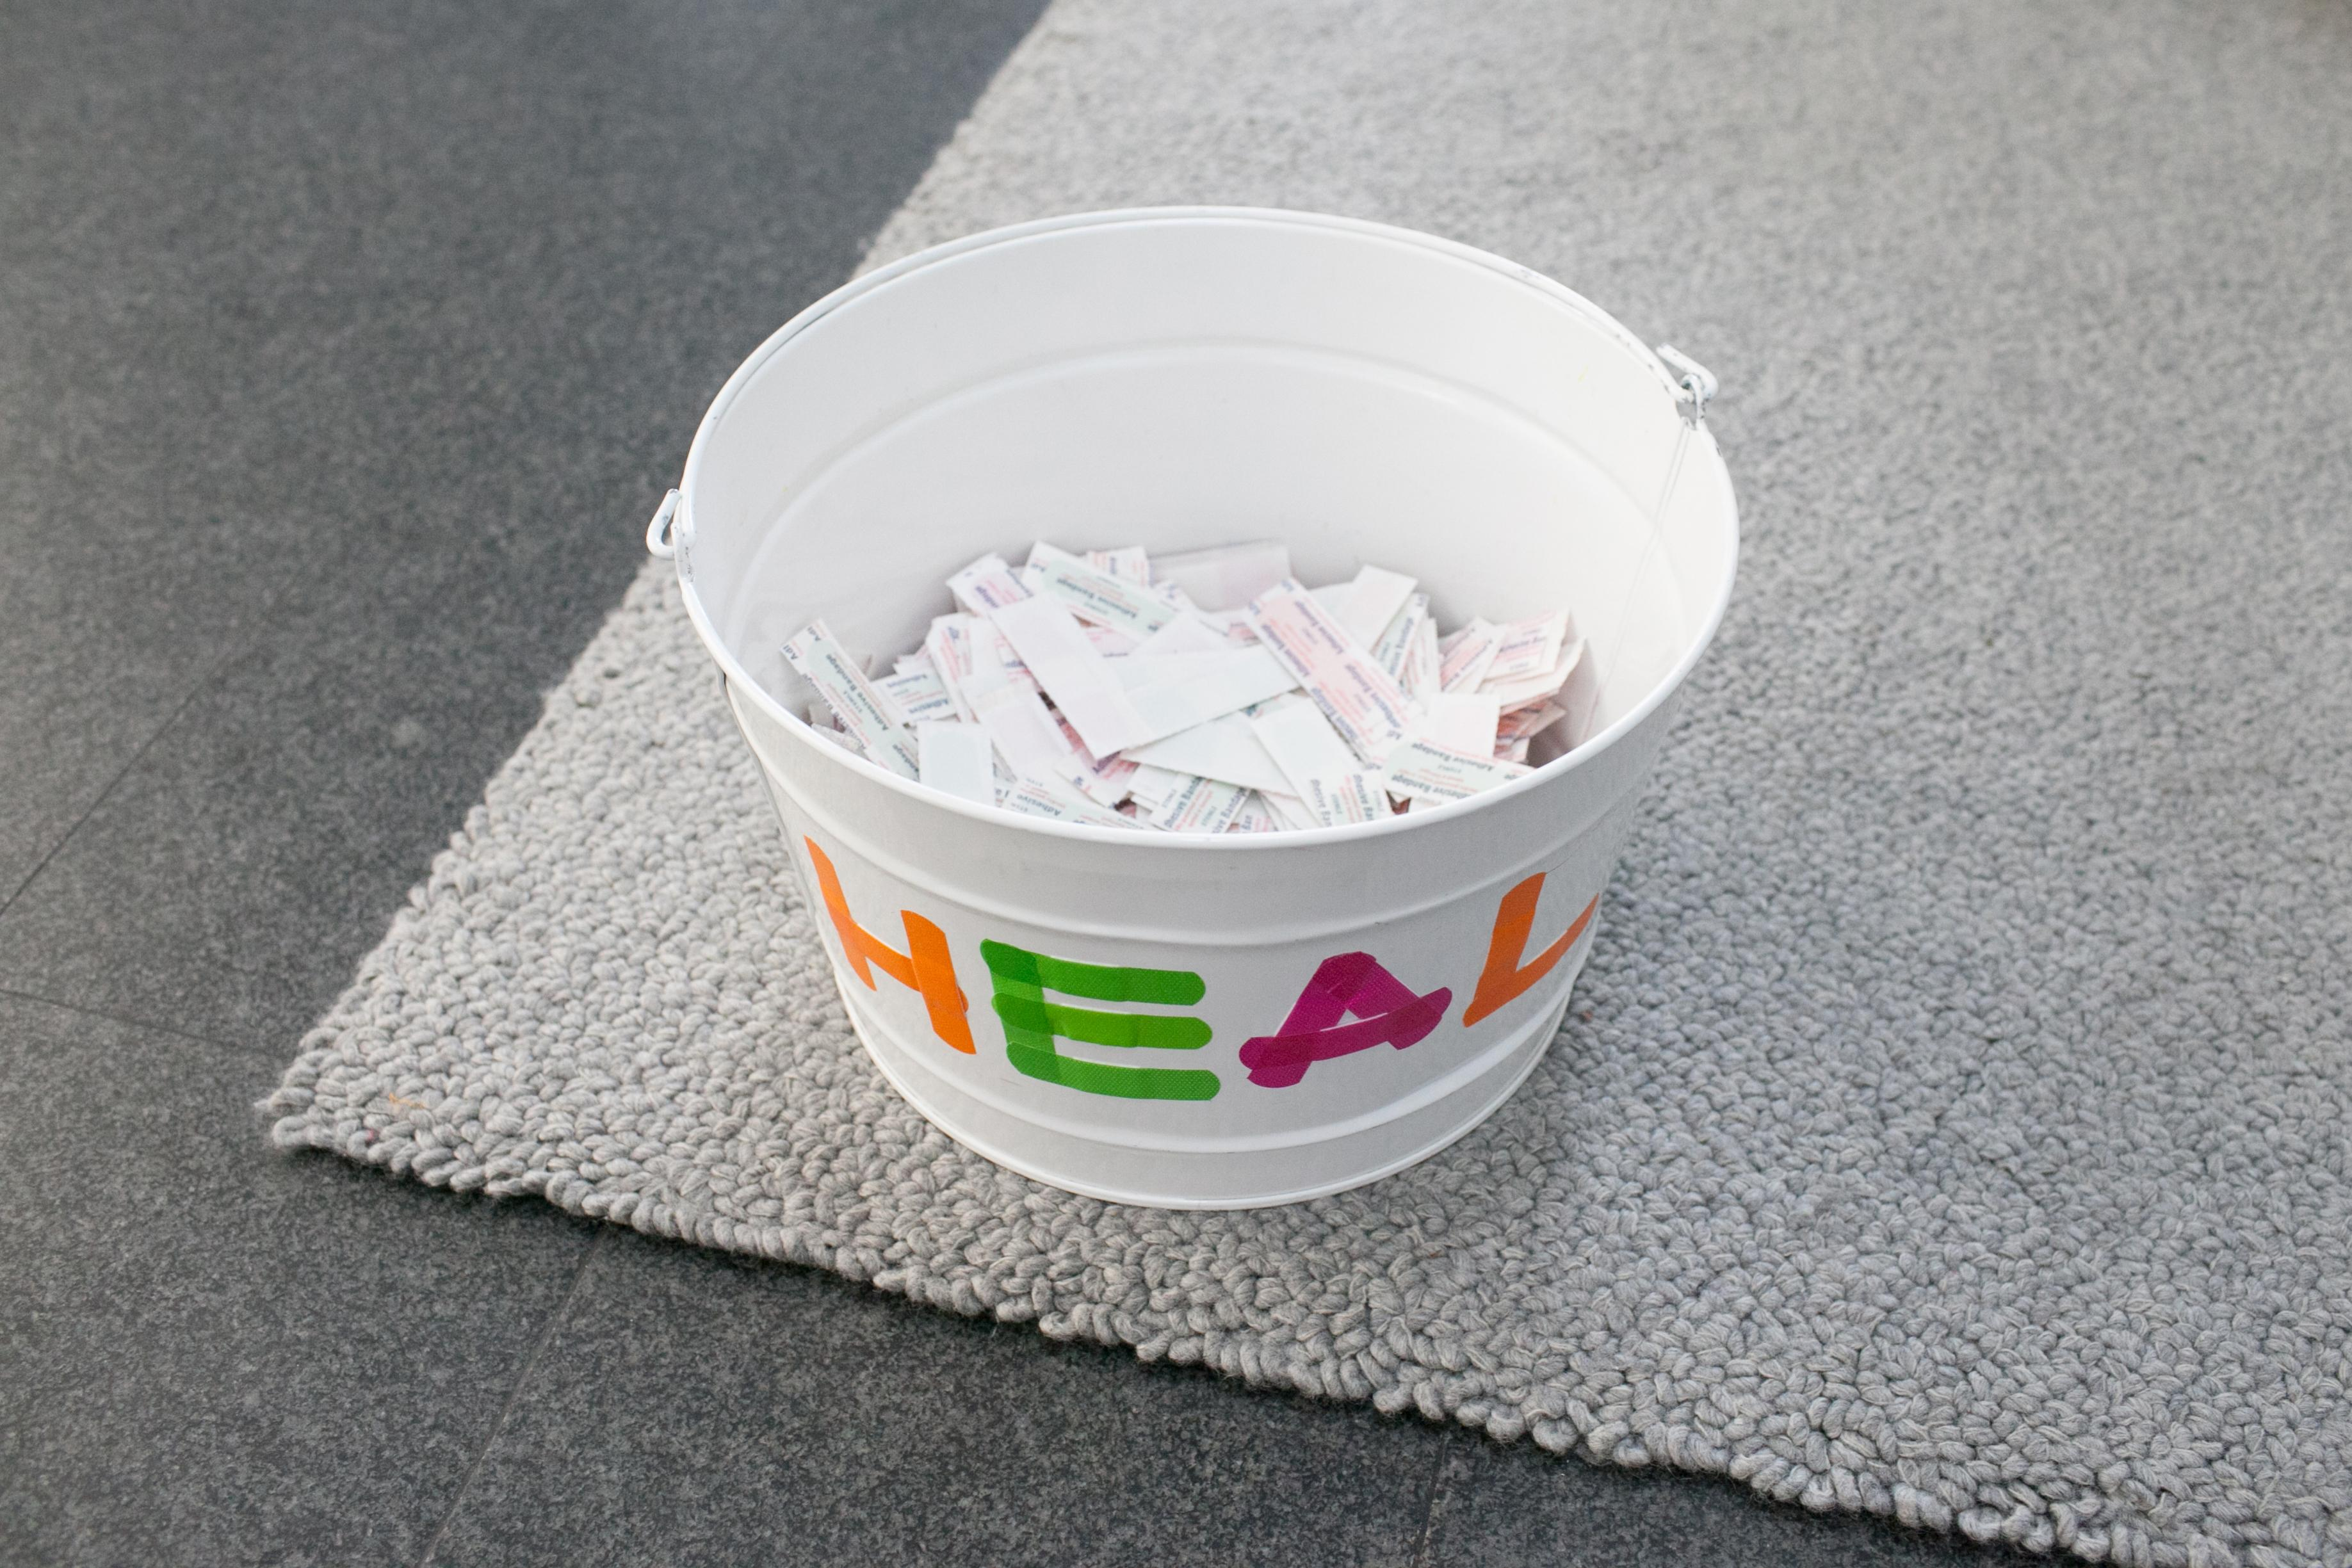 """A white pail labeled """"HEAL"""" in bright colors sits on the corner of a gray rug, which in turn rests on a gray granite floor. The pail is half-way filled with slips of paper."""